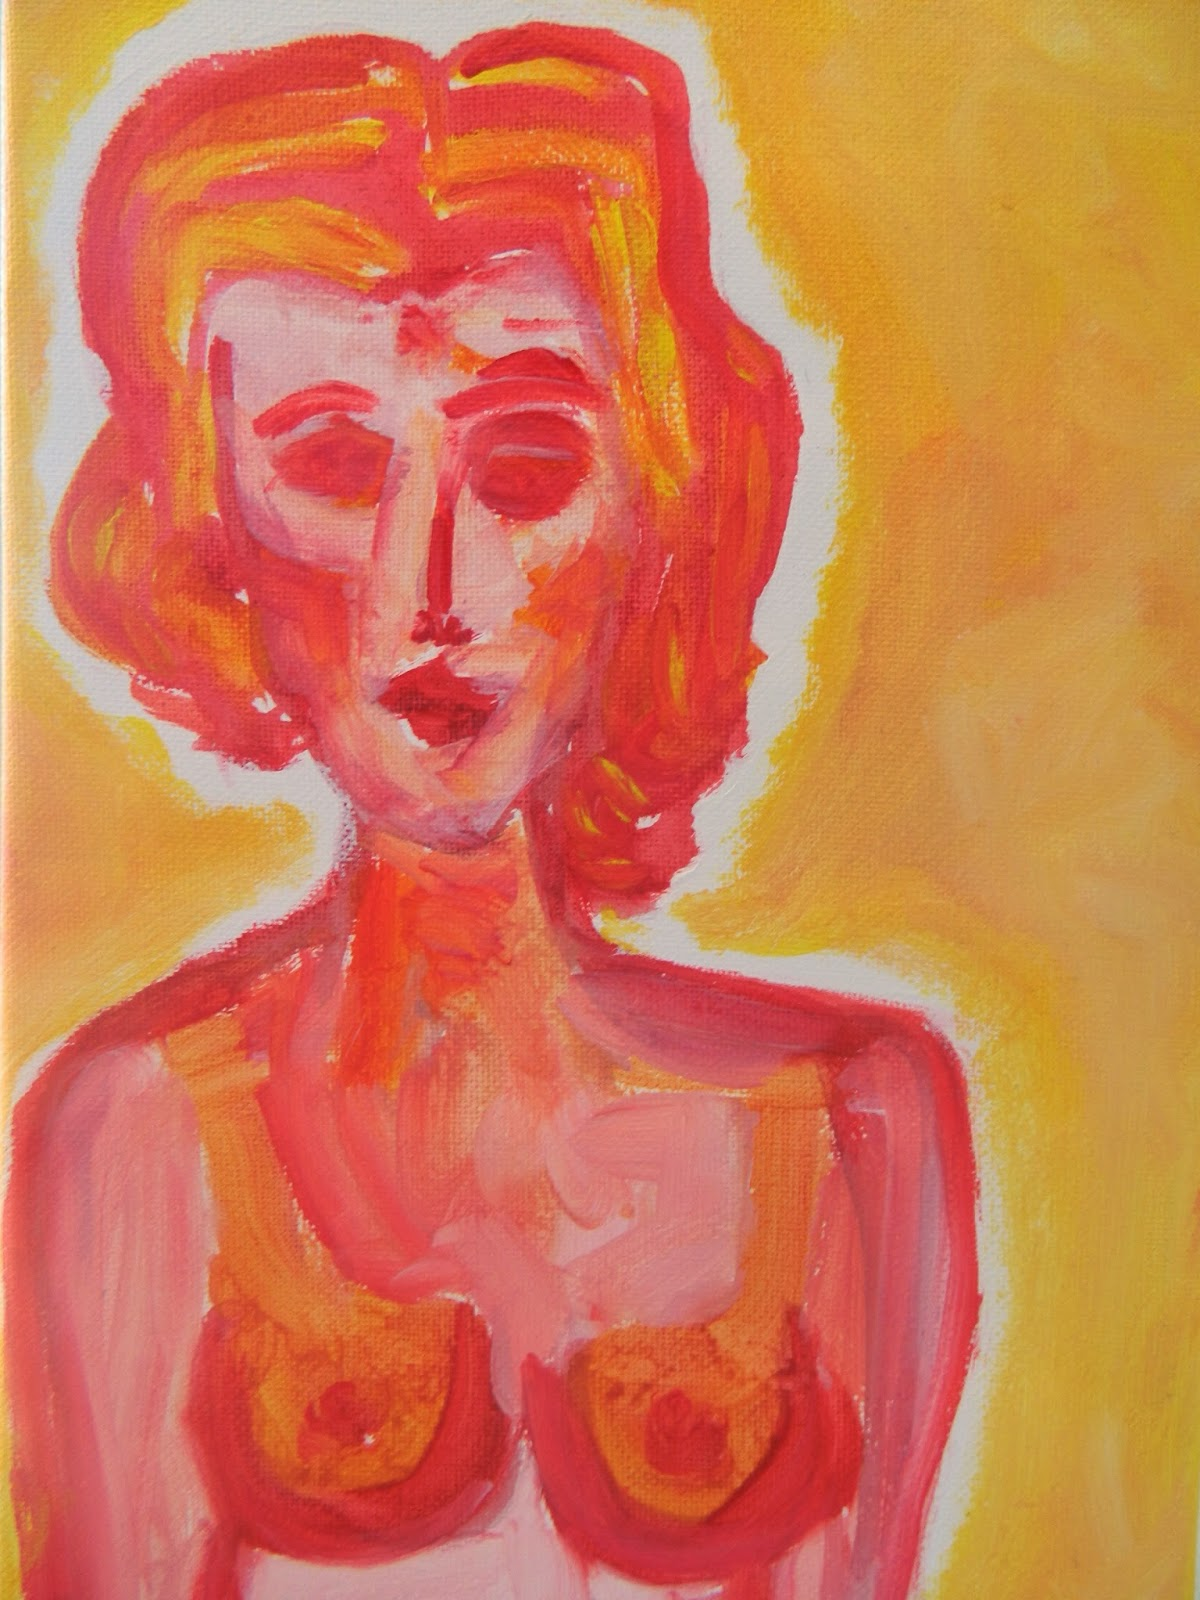 Pintura que muestra a una mujer, de la que se ve su busto, sus pechos y tiene el pelo rubio con fondo anaranjado. Painting that shows a woman in red and orange with asymetric hair, by Emebezeta, living in palma de mallorca, Illes balears, Spain, in 2014, over paper.  Pintura sobre libros reciclados.